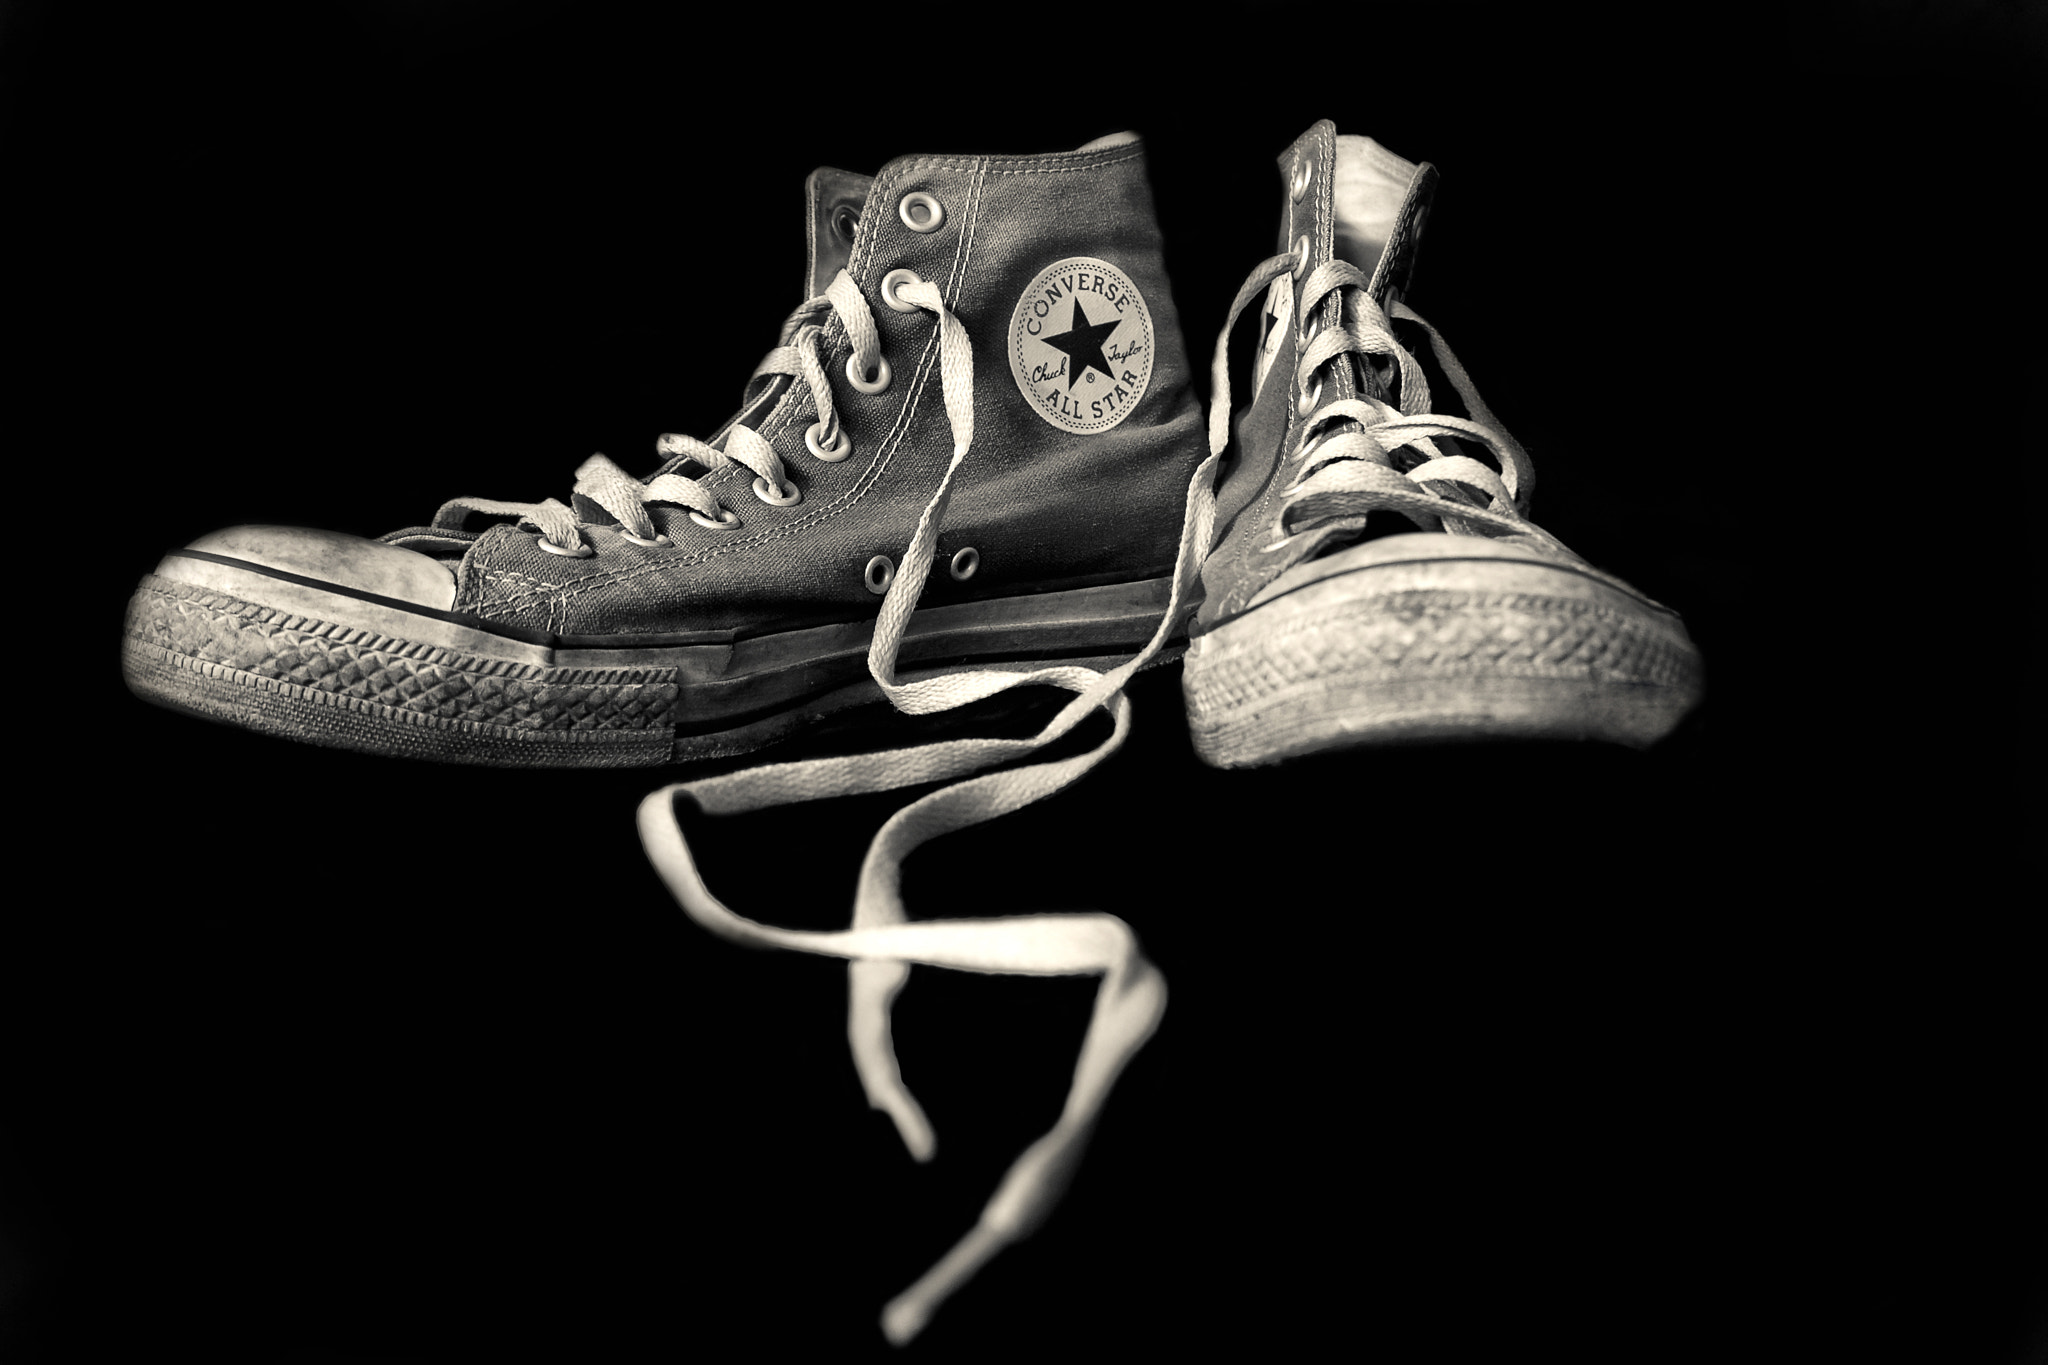 Photograph ALL STAR by Sven Becker on 500px